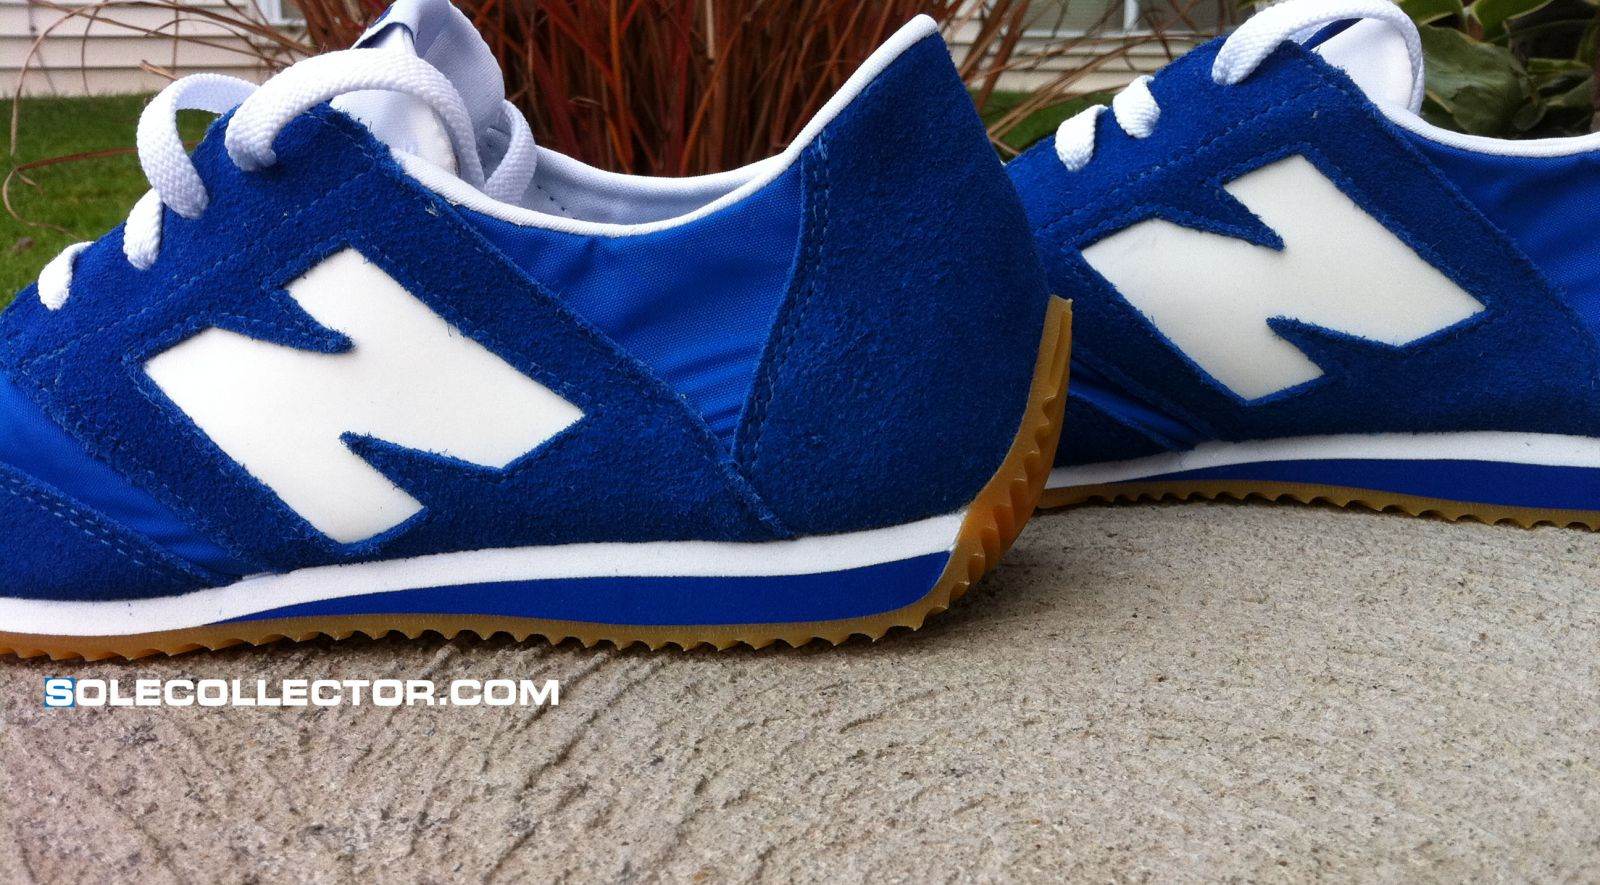 New Balance 301 Release for Women Only | Sole Collector